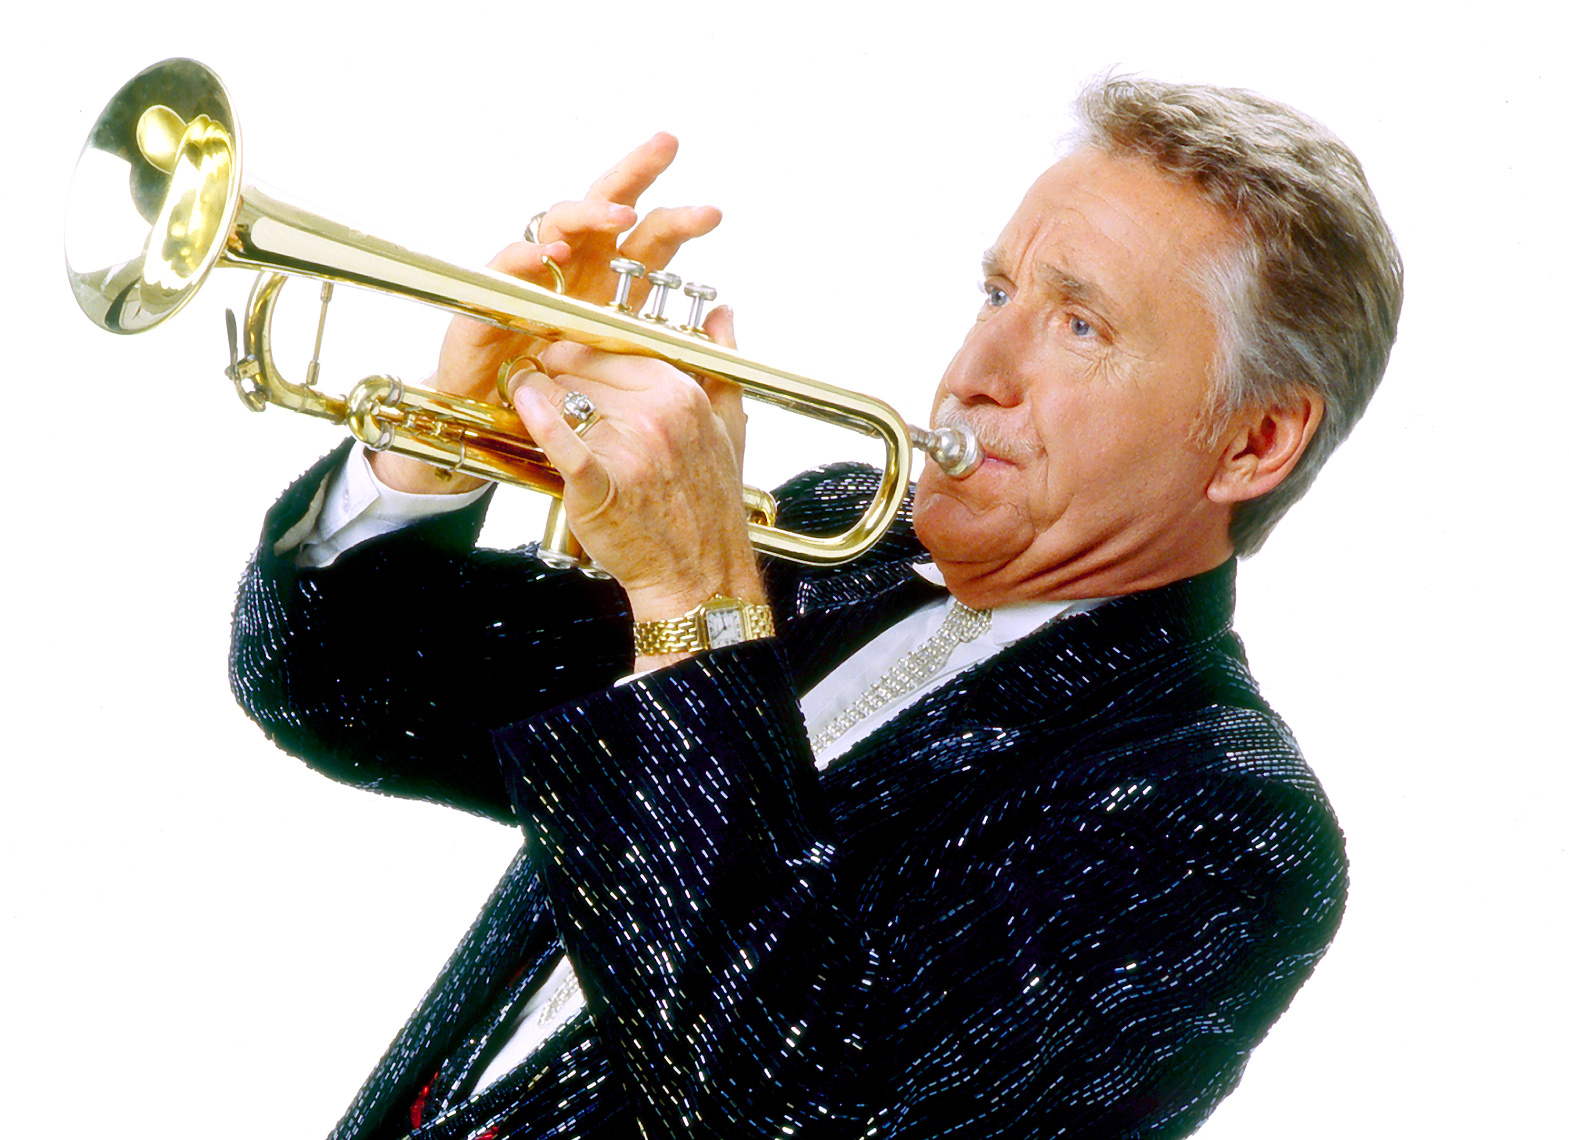 Doc-Severinsen-photographed-by-Joe-Henson-Best-Actors-Headshot-Photographer-Corporate Portraits-NYC-NY-New-York-Washington-DC-Boston